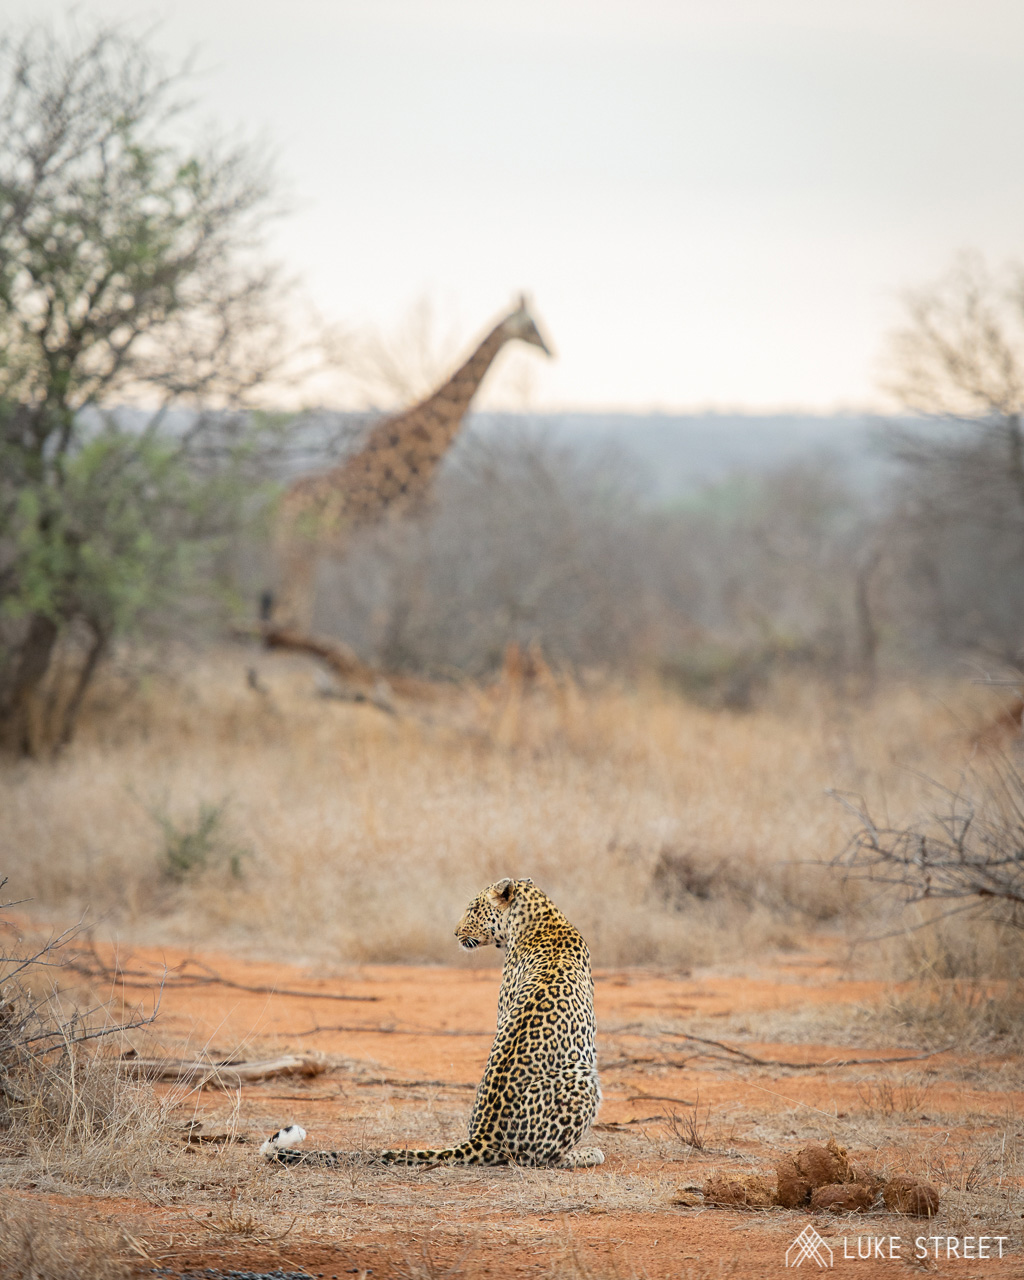 Tanda Tula - Leopard and giraffe in the Greater Kruger, South Africa